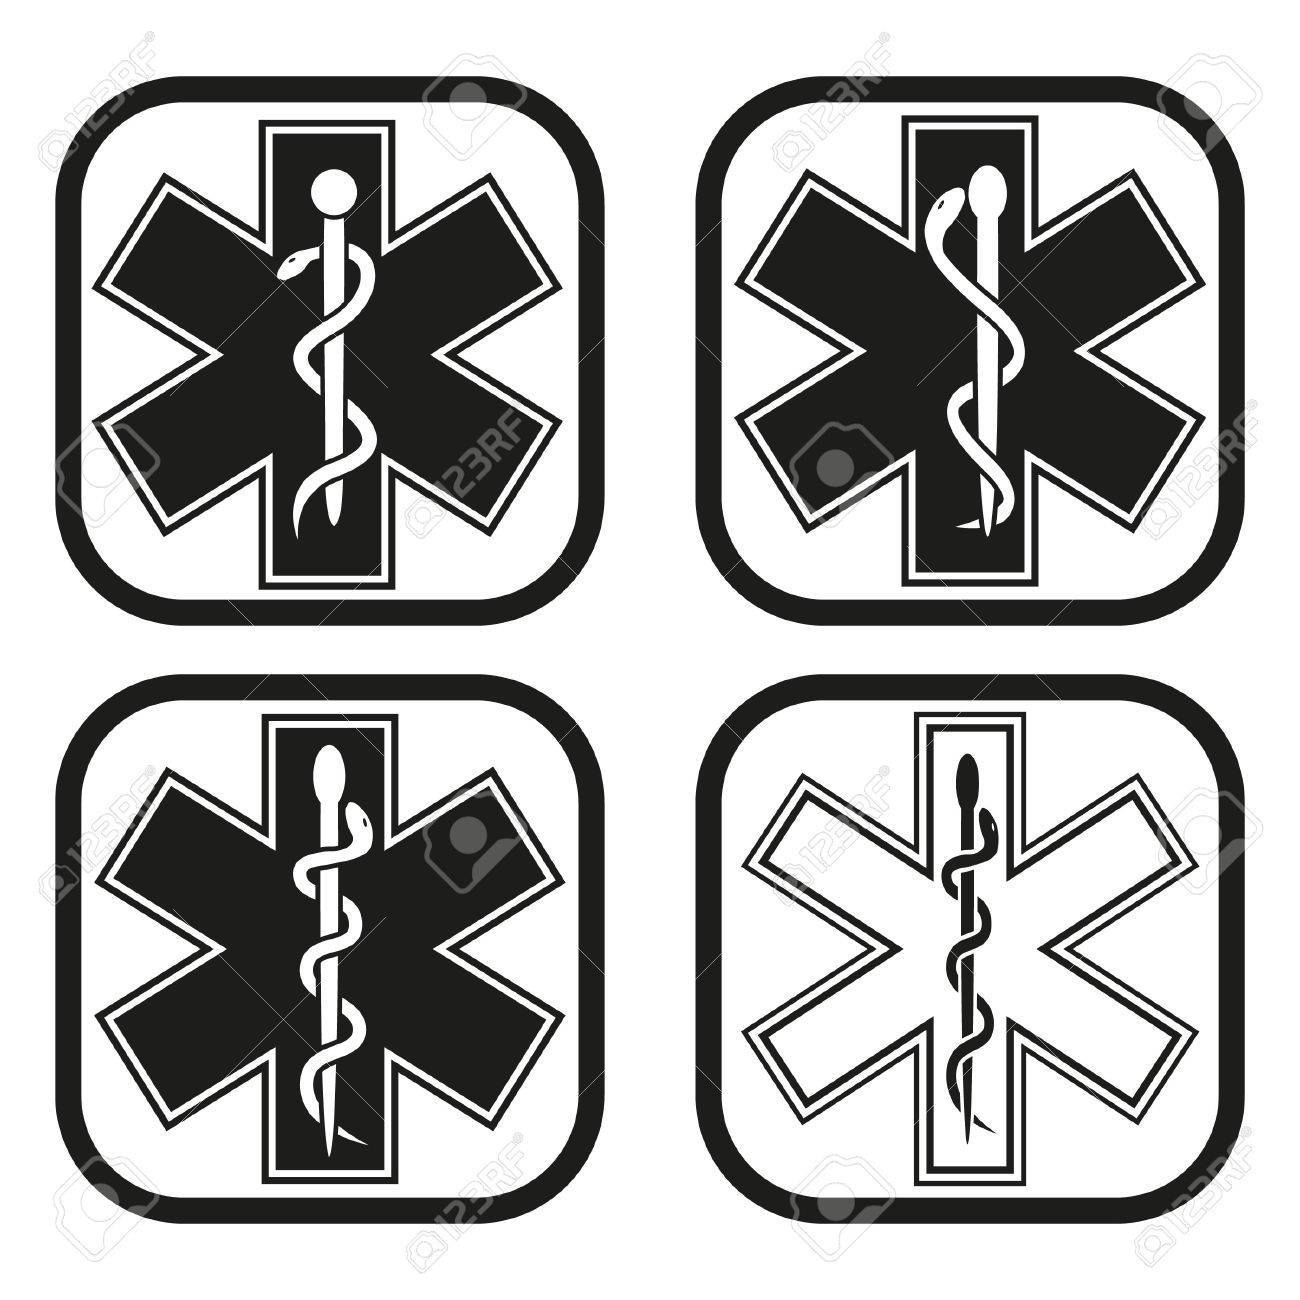 Medical Emergency Symbol Four Variations Royalty Free Cliparts